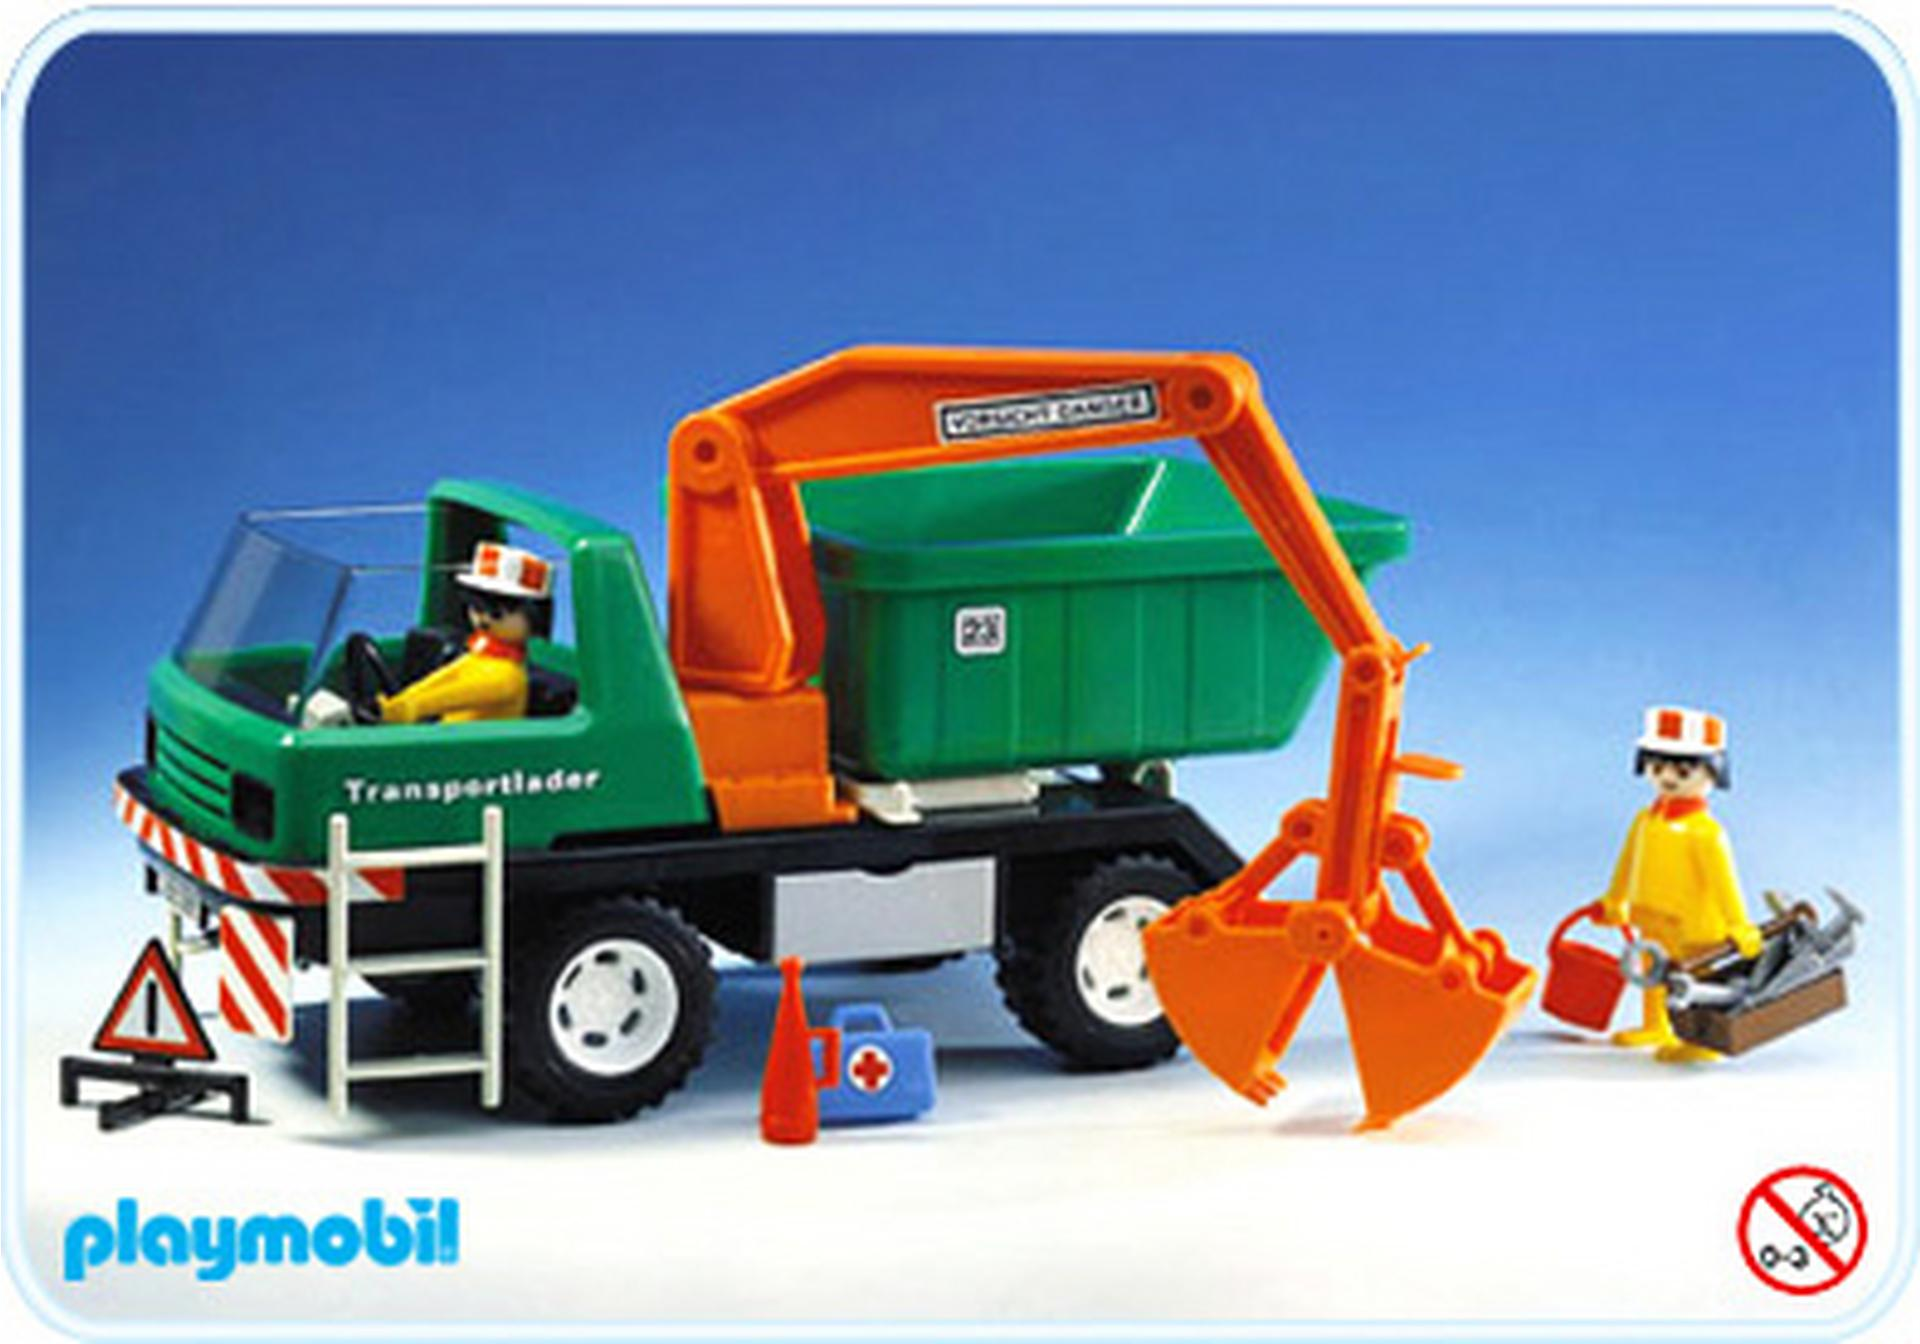 Camion grue benne 3475 a playmobil france - Playmobil camion ...